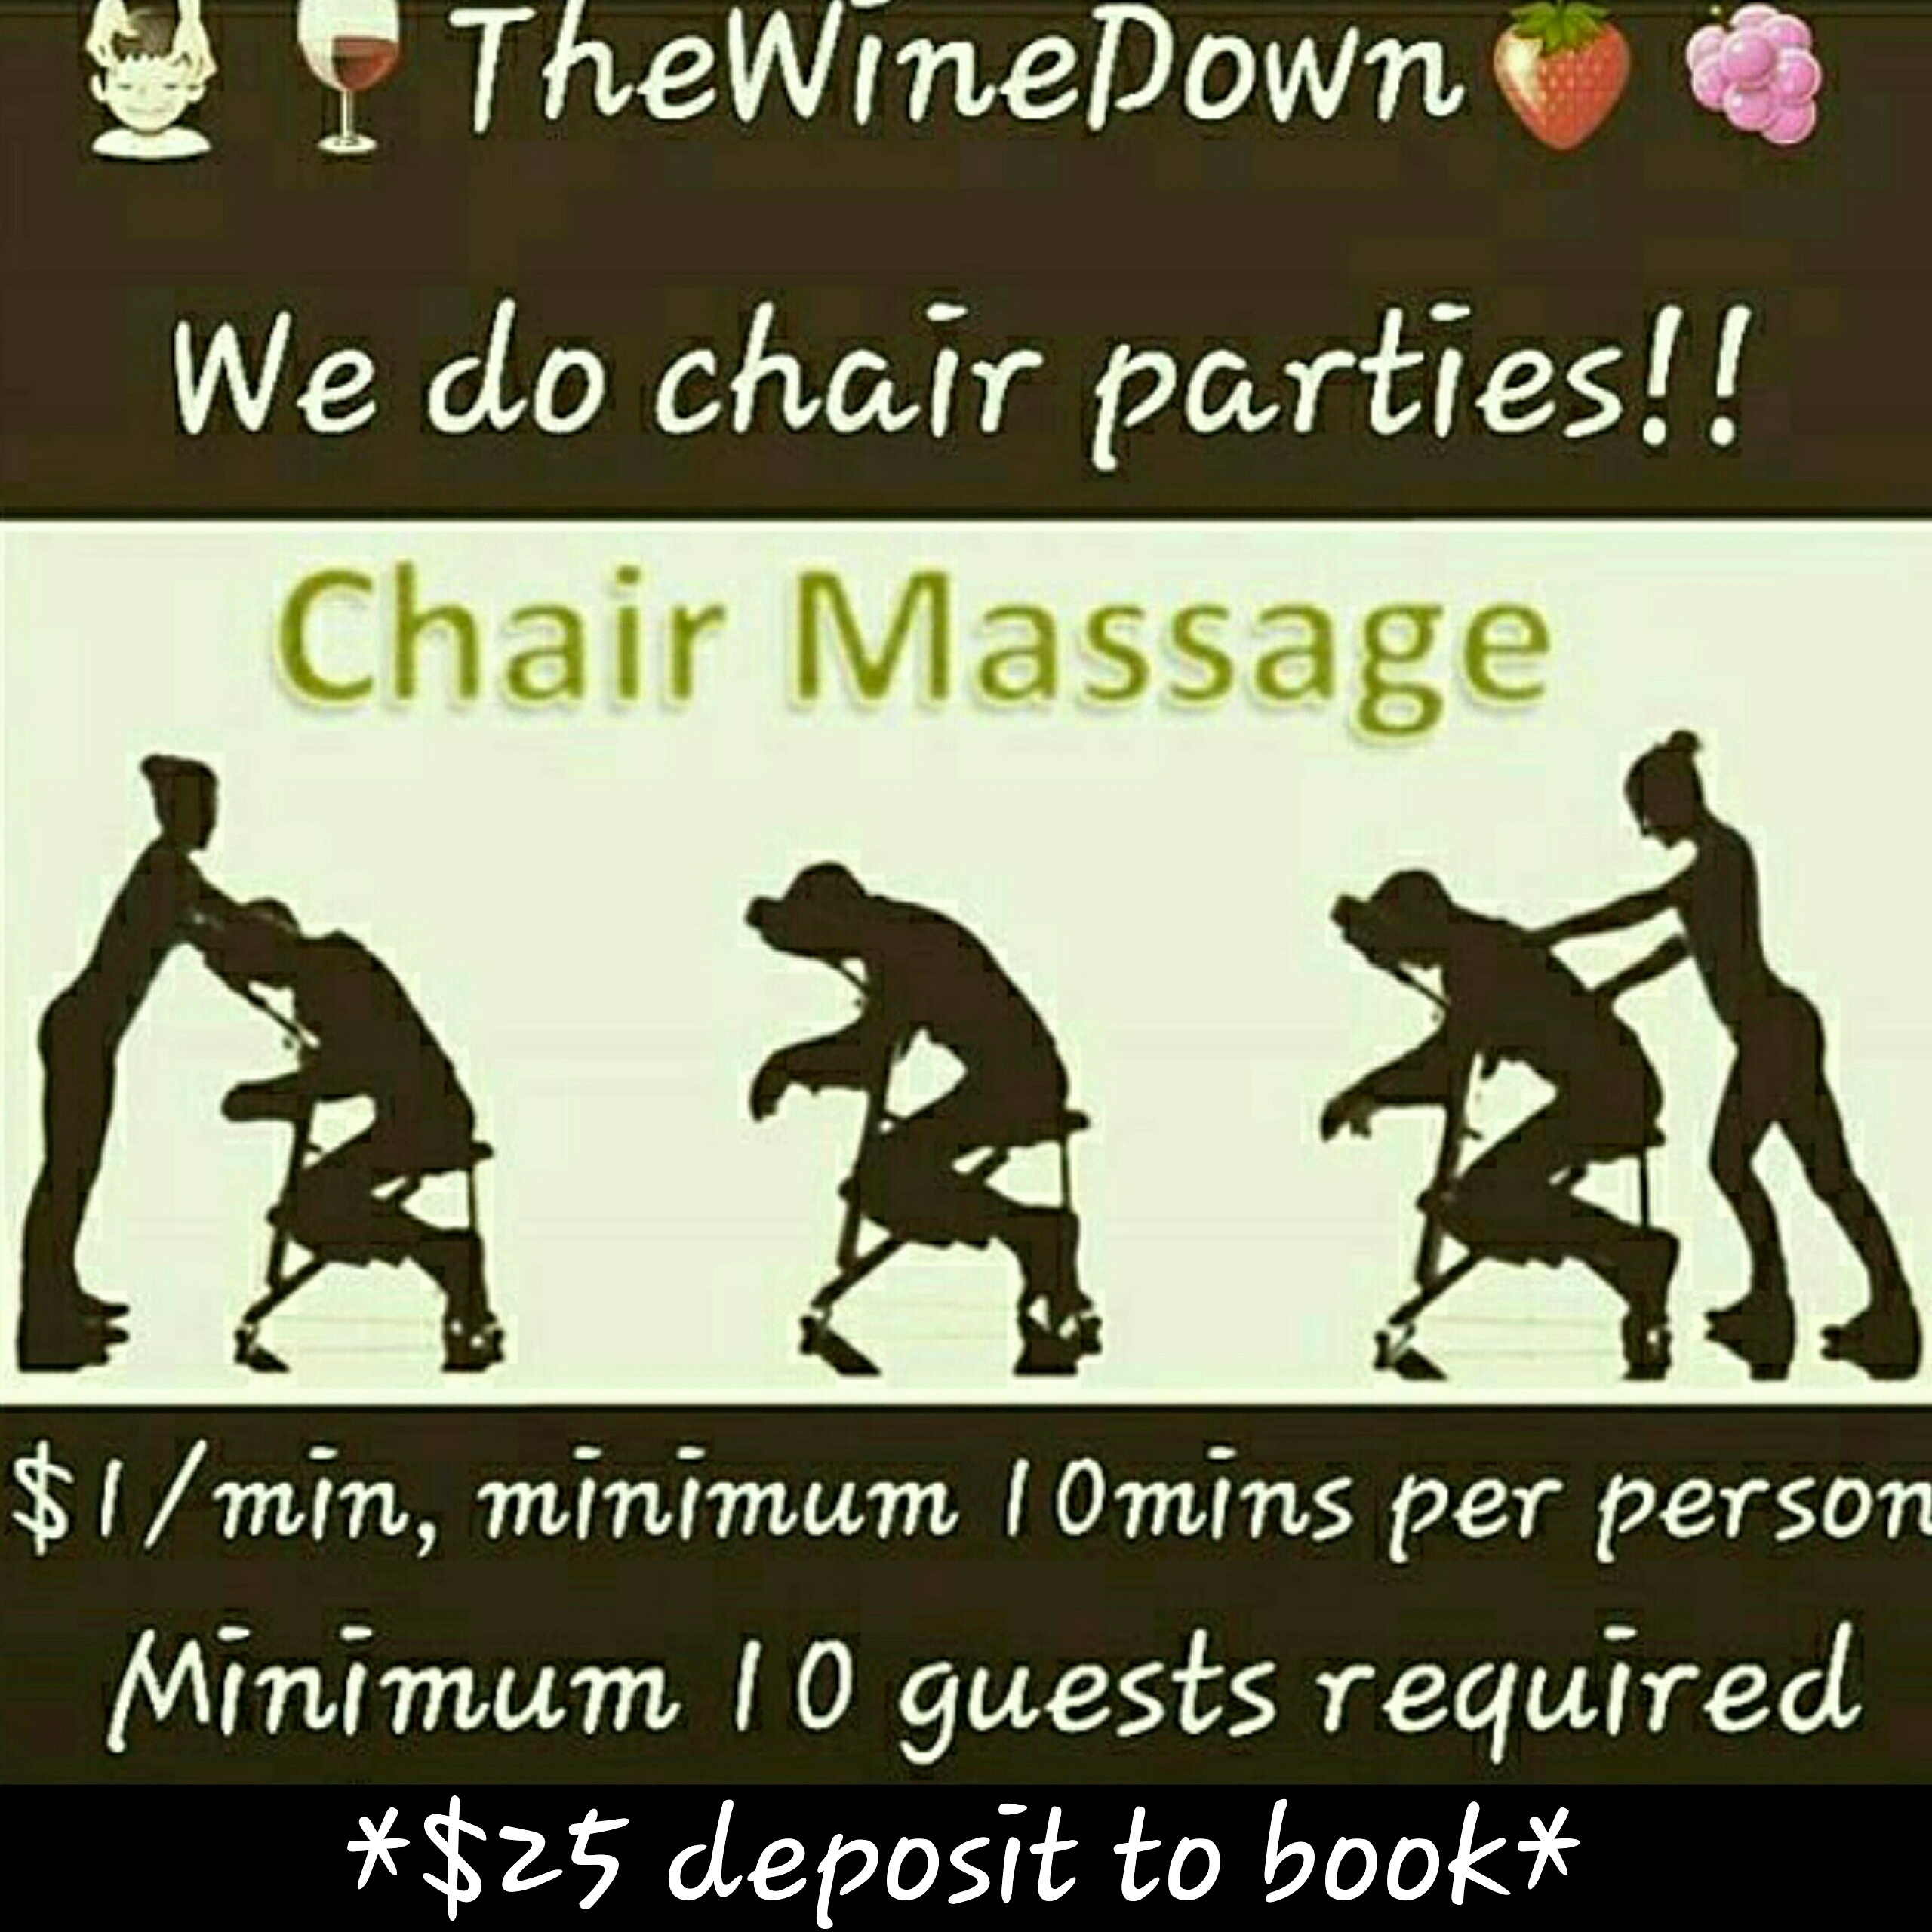 Chair Party Pricing